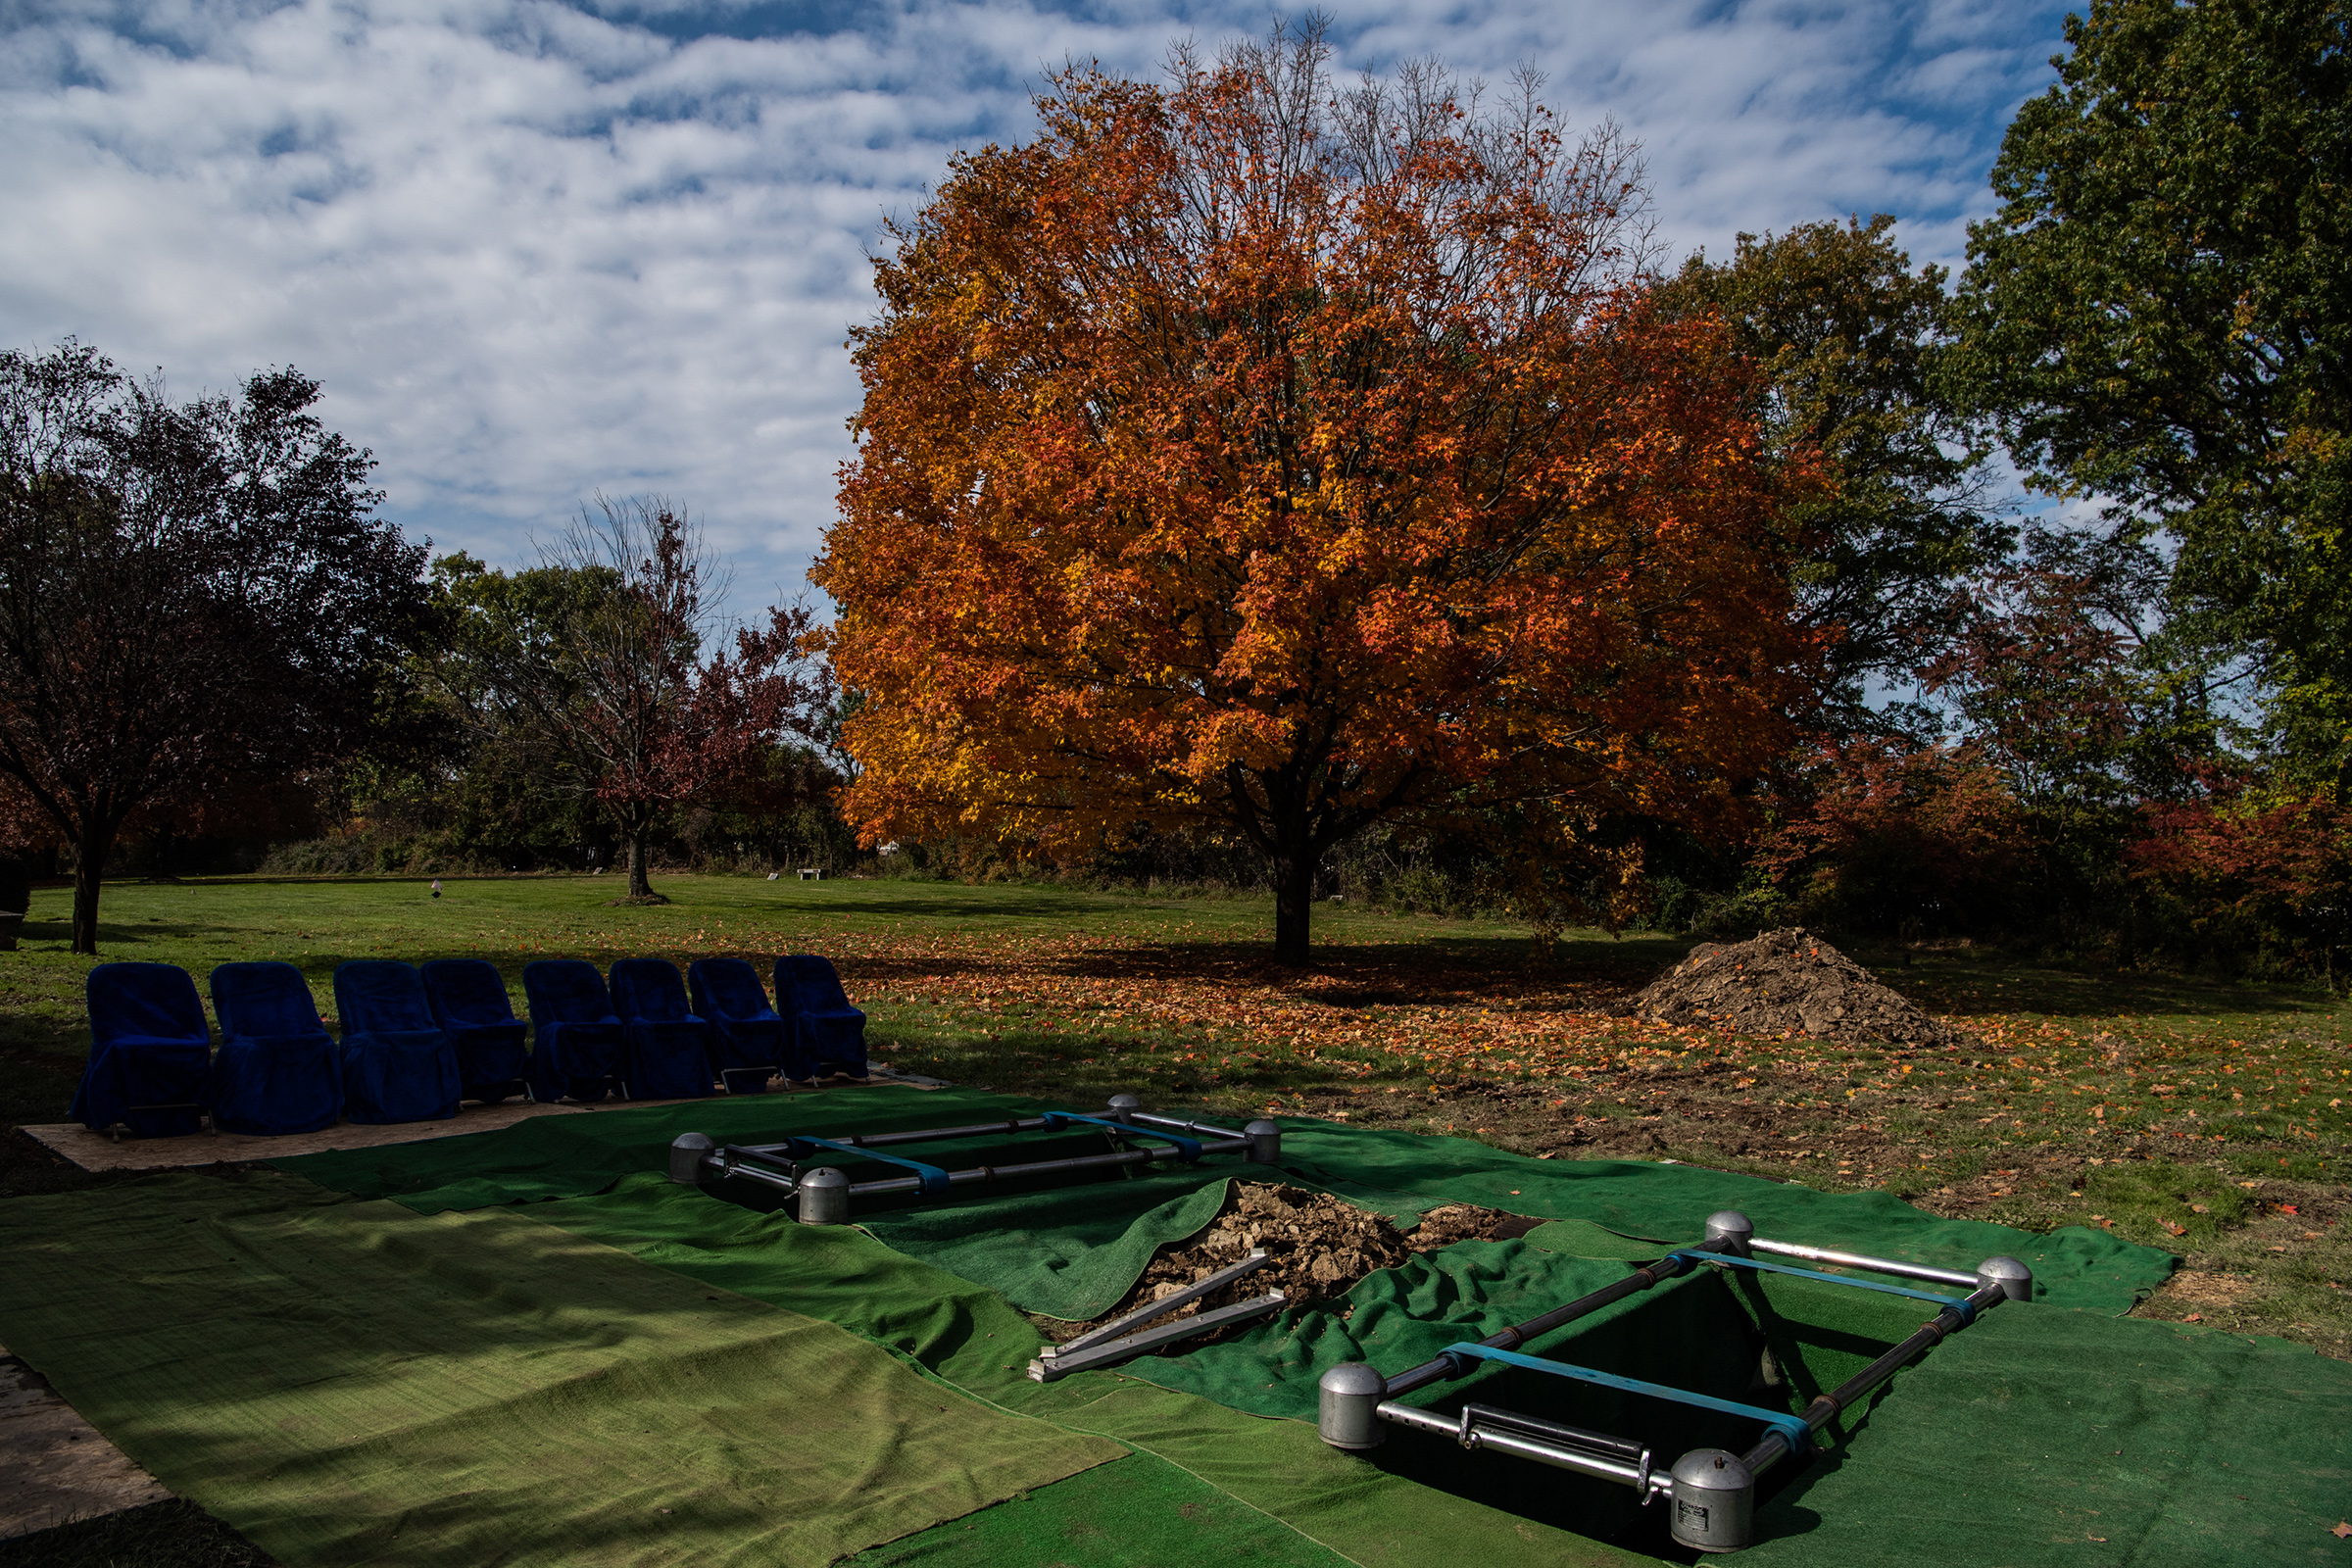 Two graves that were dug for of brothers David Rosenthal and Cecil Rosenthal who were killed at the mass shooting at the Tree of Life Synagogue are seen at the Tree of Life Memorial Park cemetery on Tuesday, Oct. 30, 2018, in Pittsburgh.